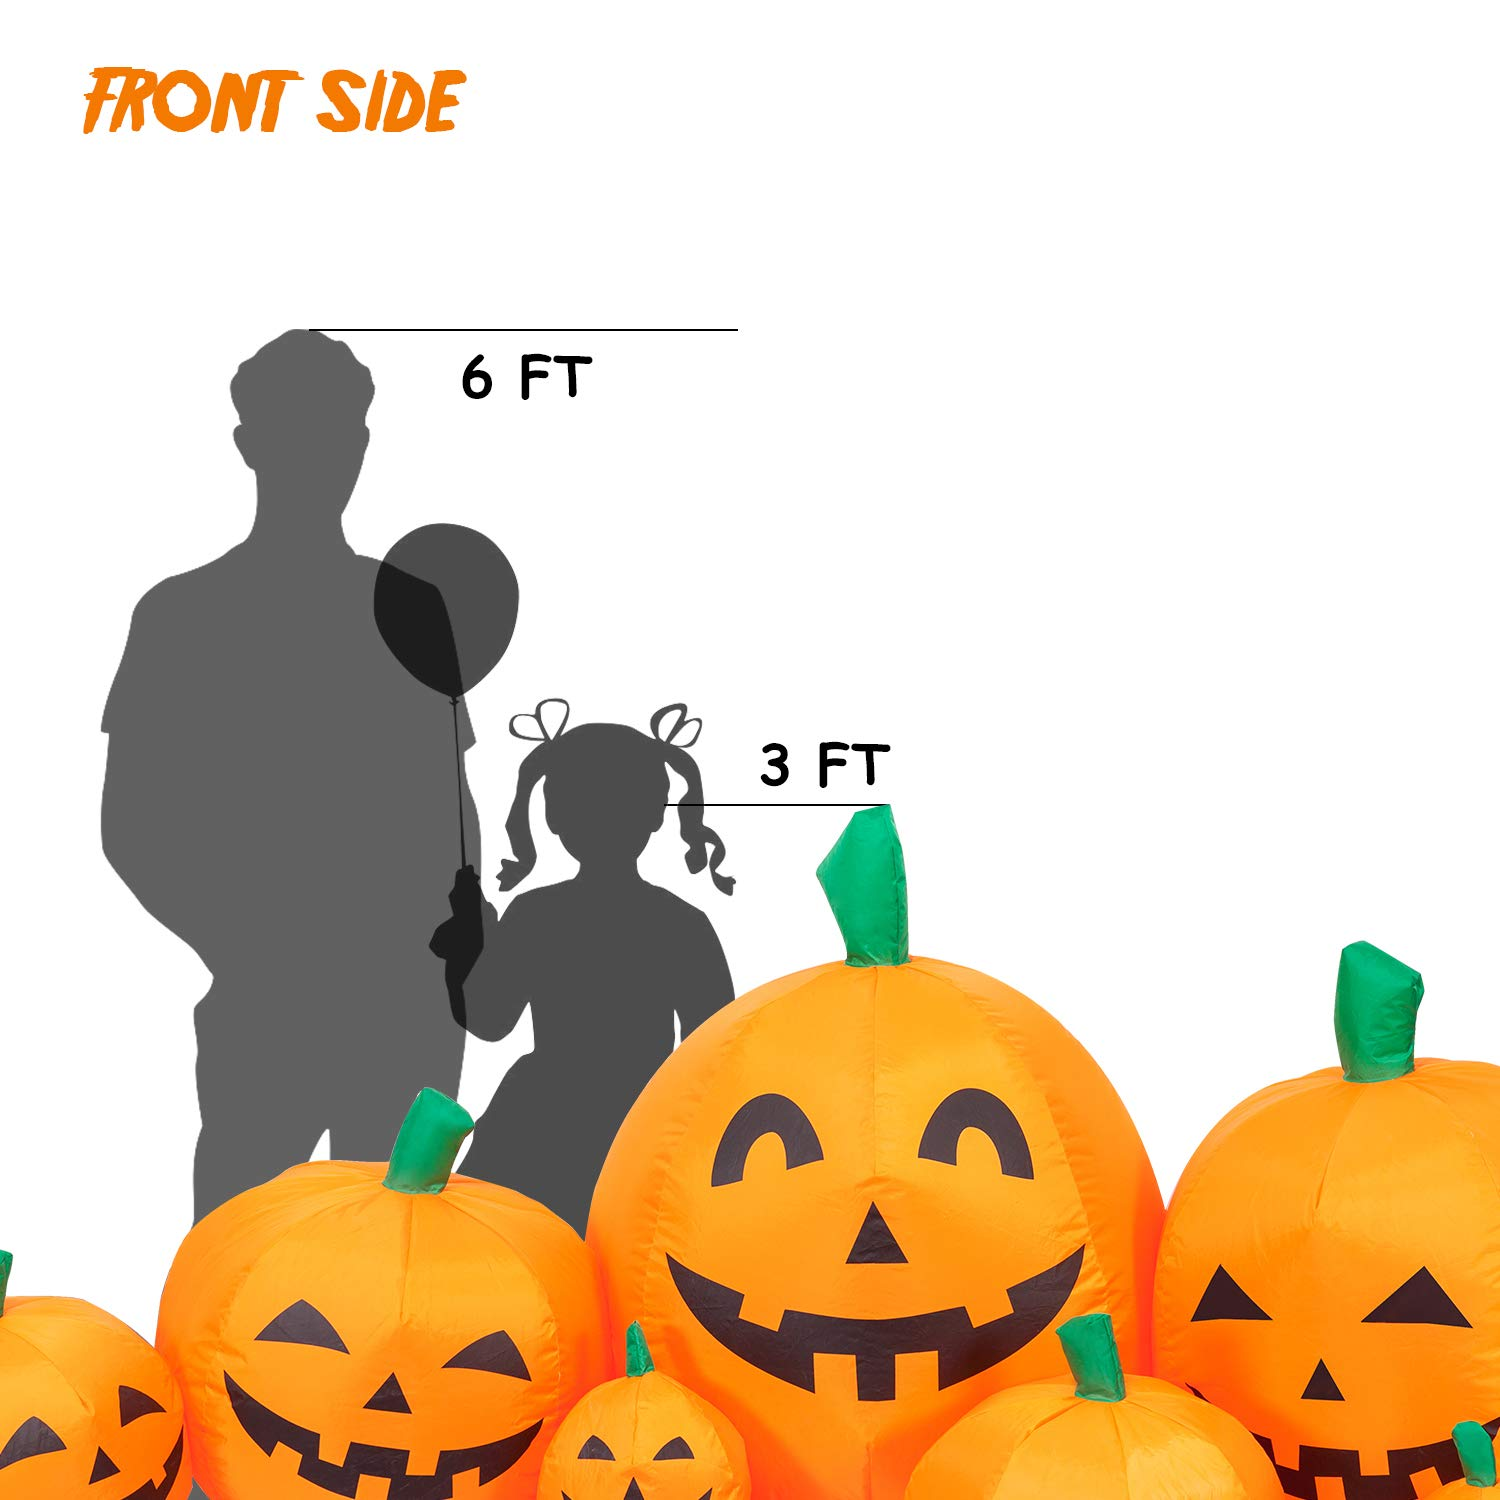 Blow up Party Decor for Indoor Outdoor Yard with LED Lights YIHONG 8 Ft Long Halloween Inflatables Pumpkin Patch Decorations